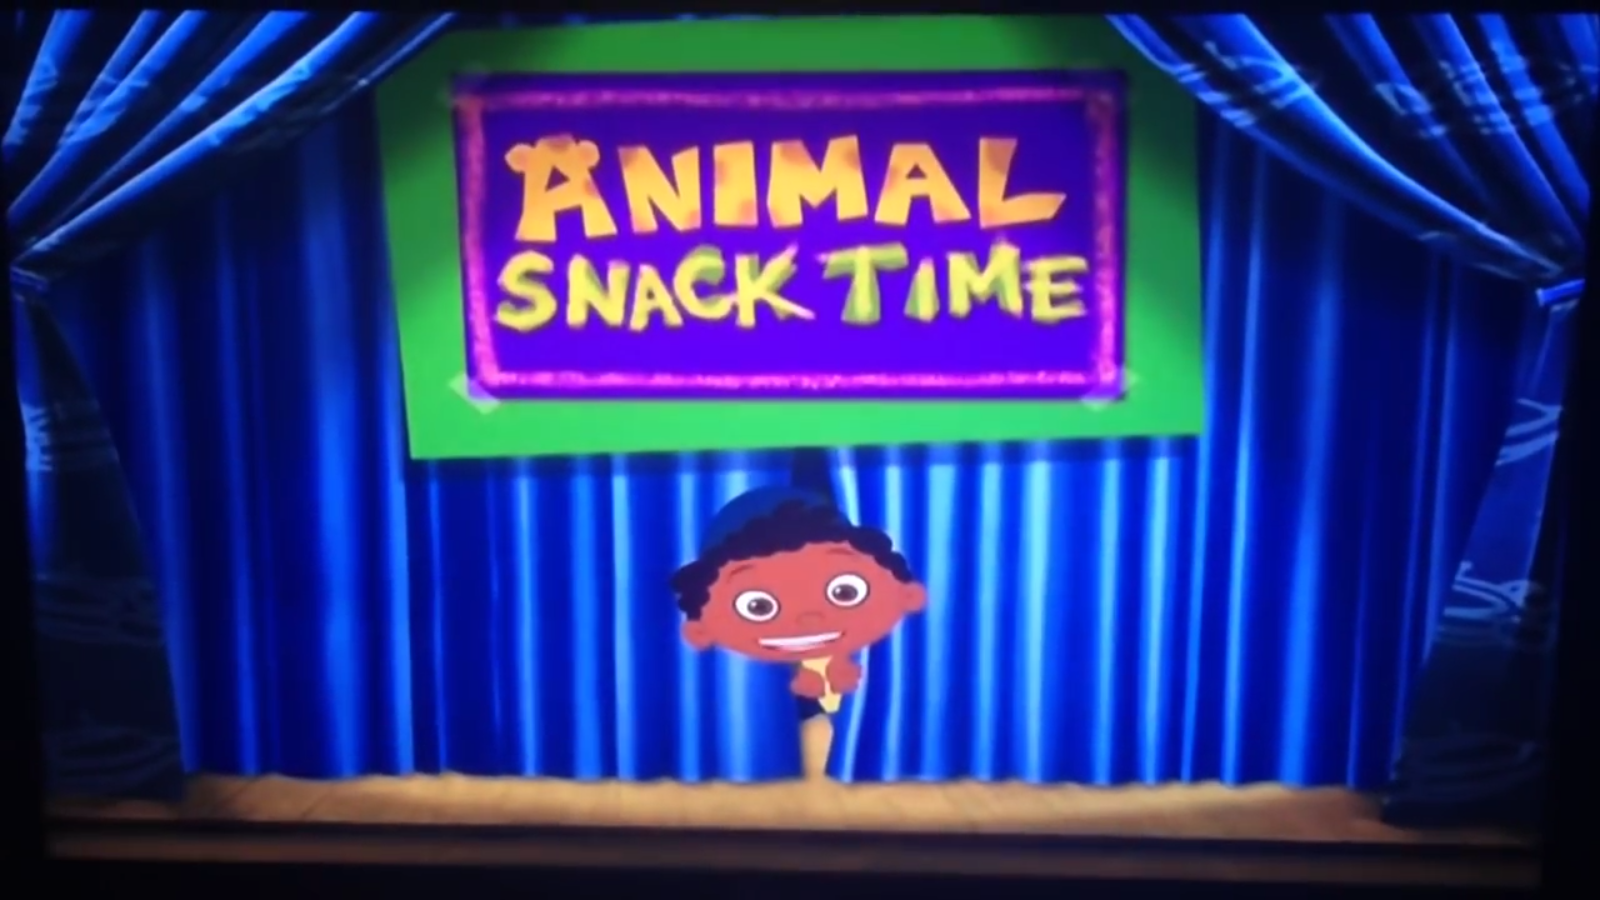 Animal Snack Time